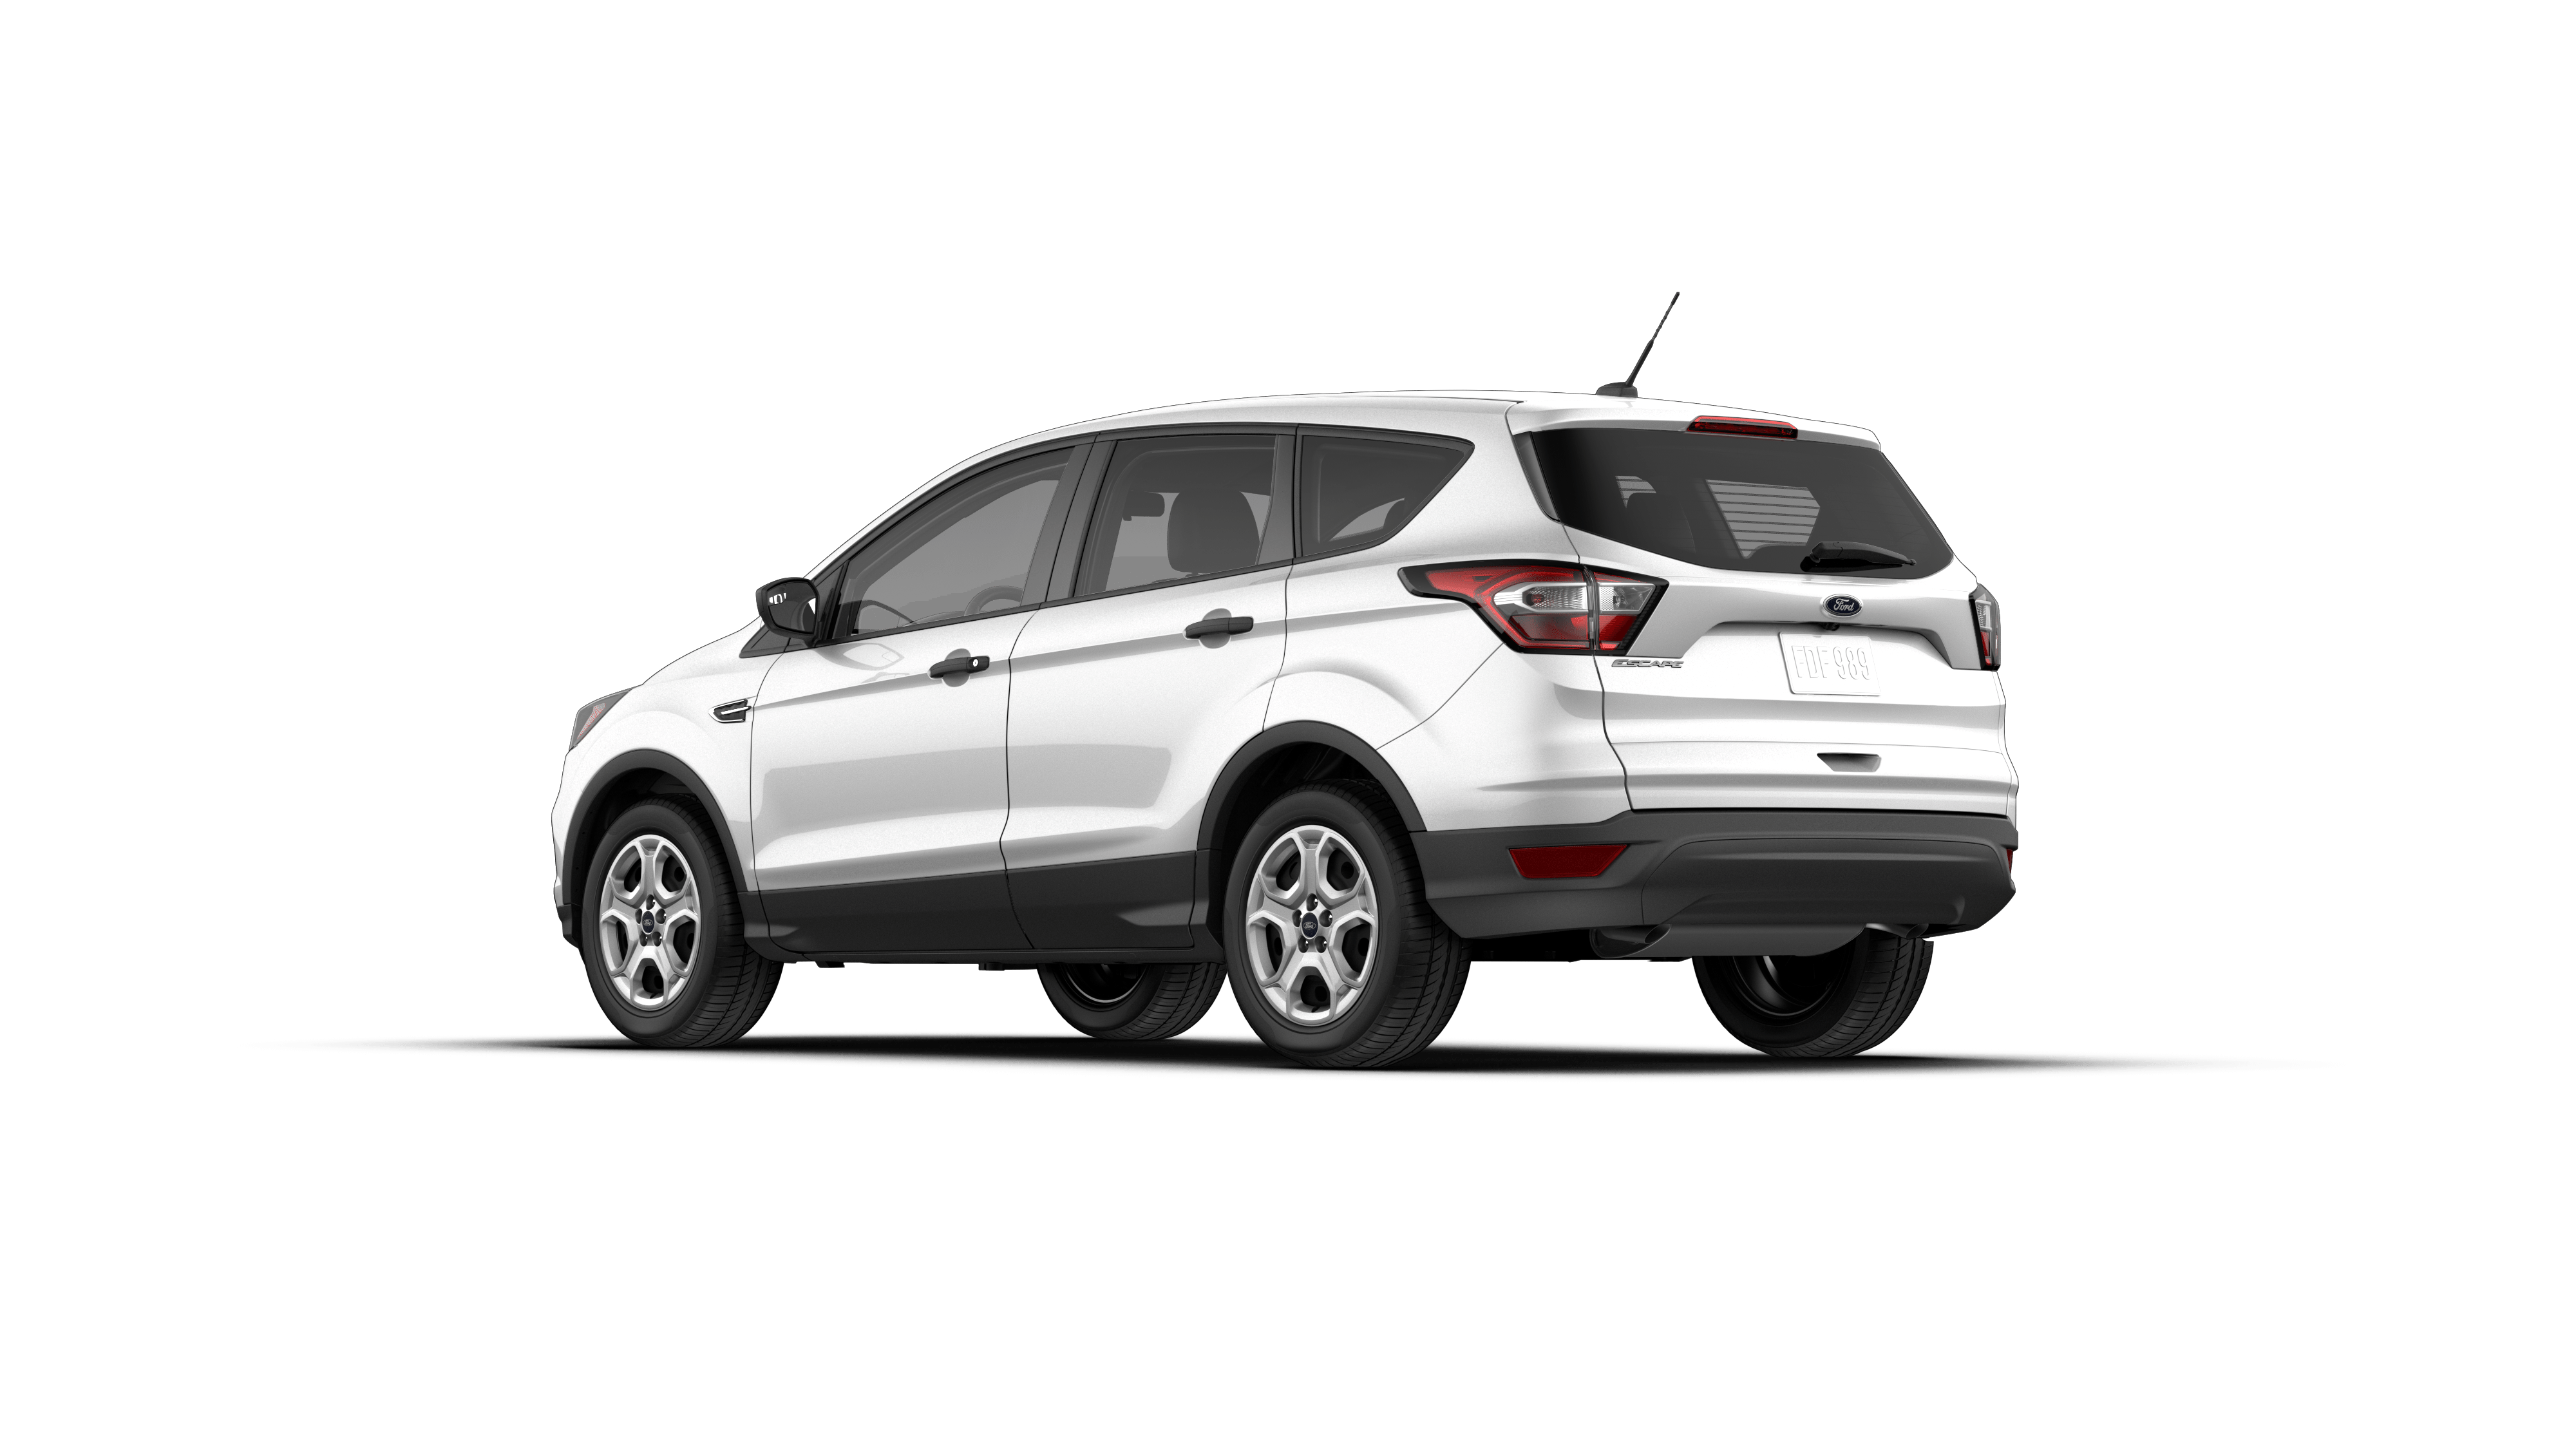 This 2018 Ford Escape Is Ready For Test Driving In Okeechobee Near Port St Lucie Jud34372nf